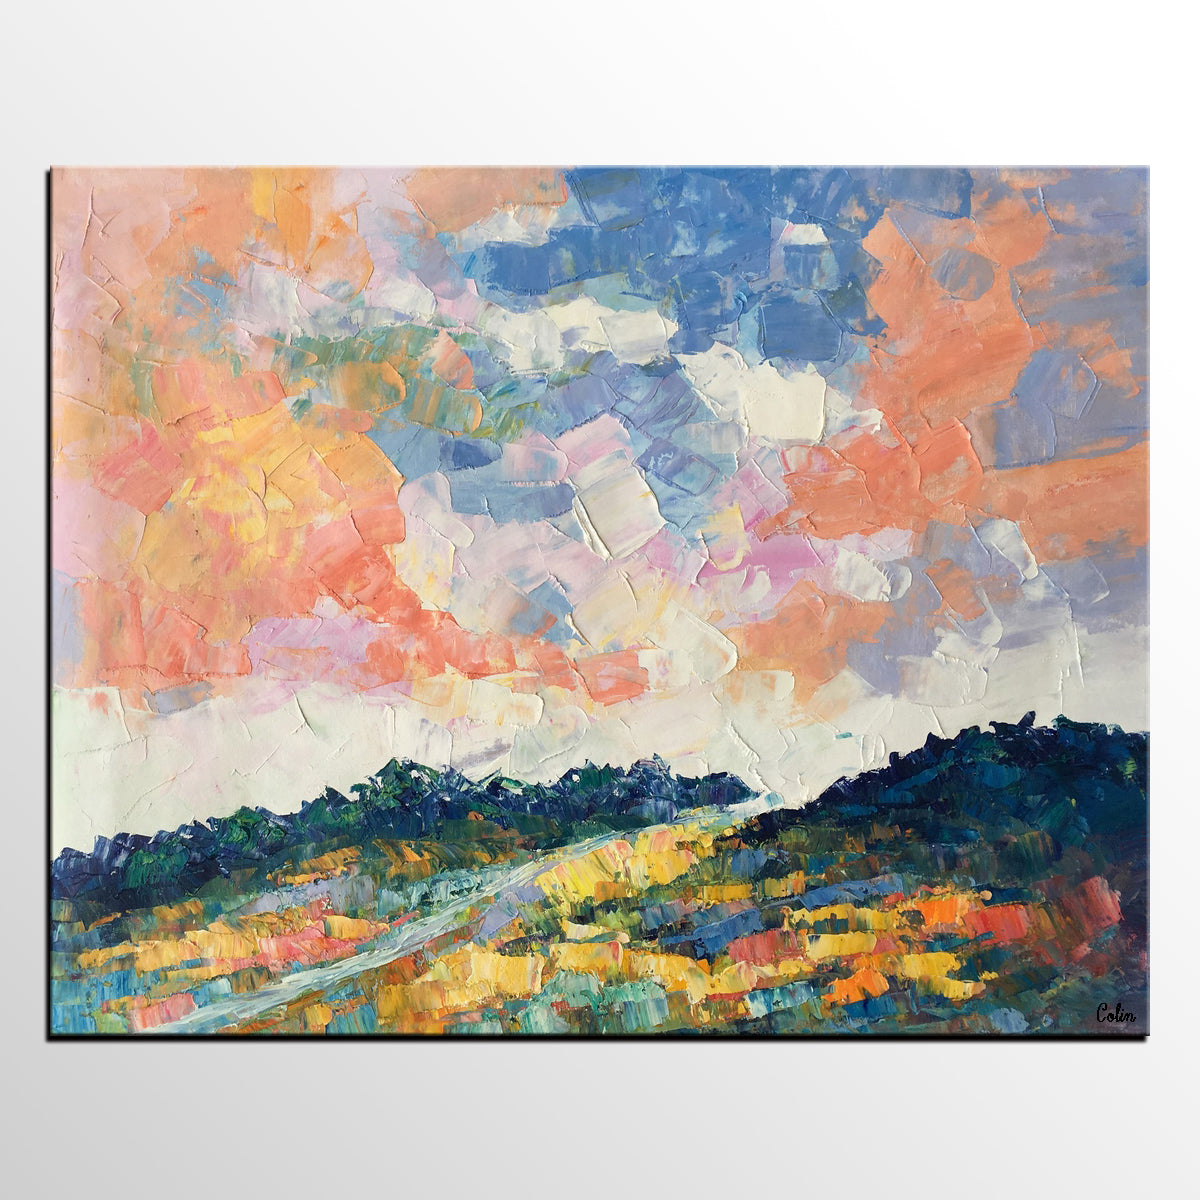 Canvas Oil Painting, Landscape Art, Mountain Sky Painting, Modern Art, Abstract Art, Large Abstract Painting, Original Art